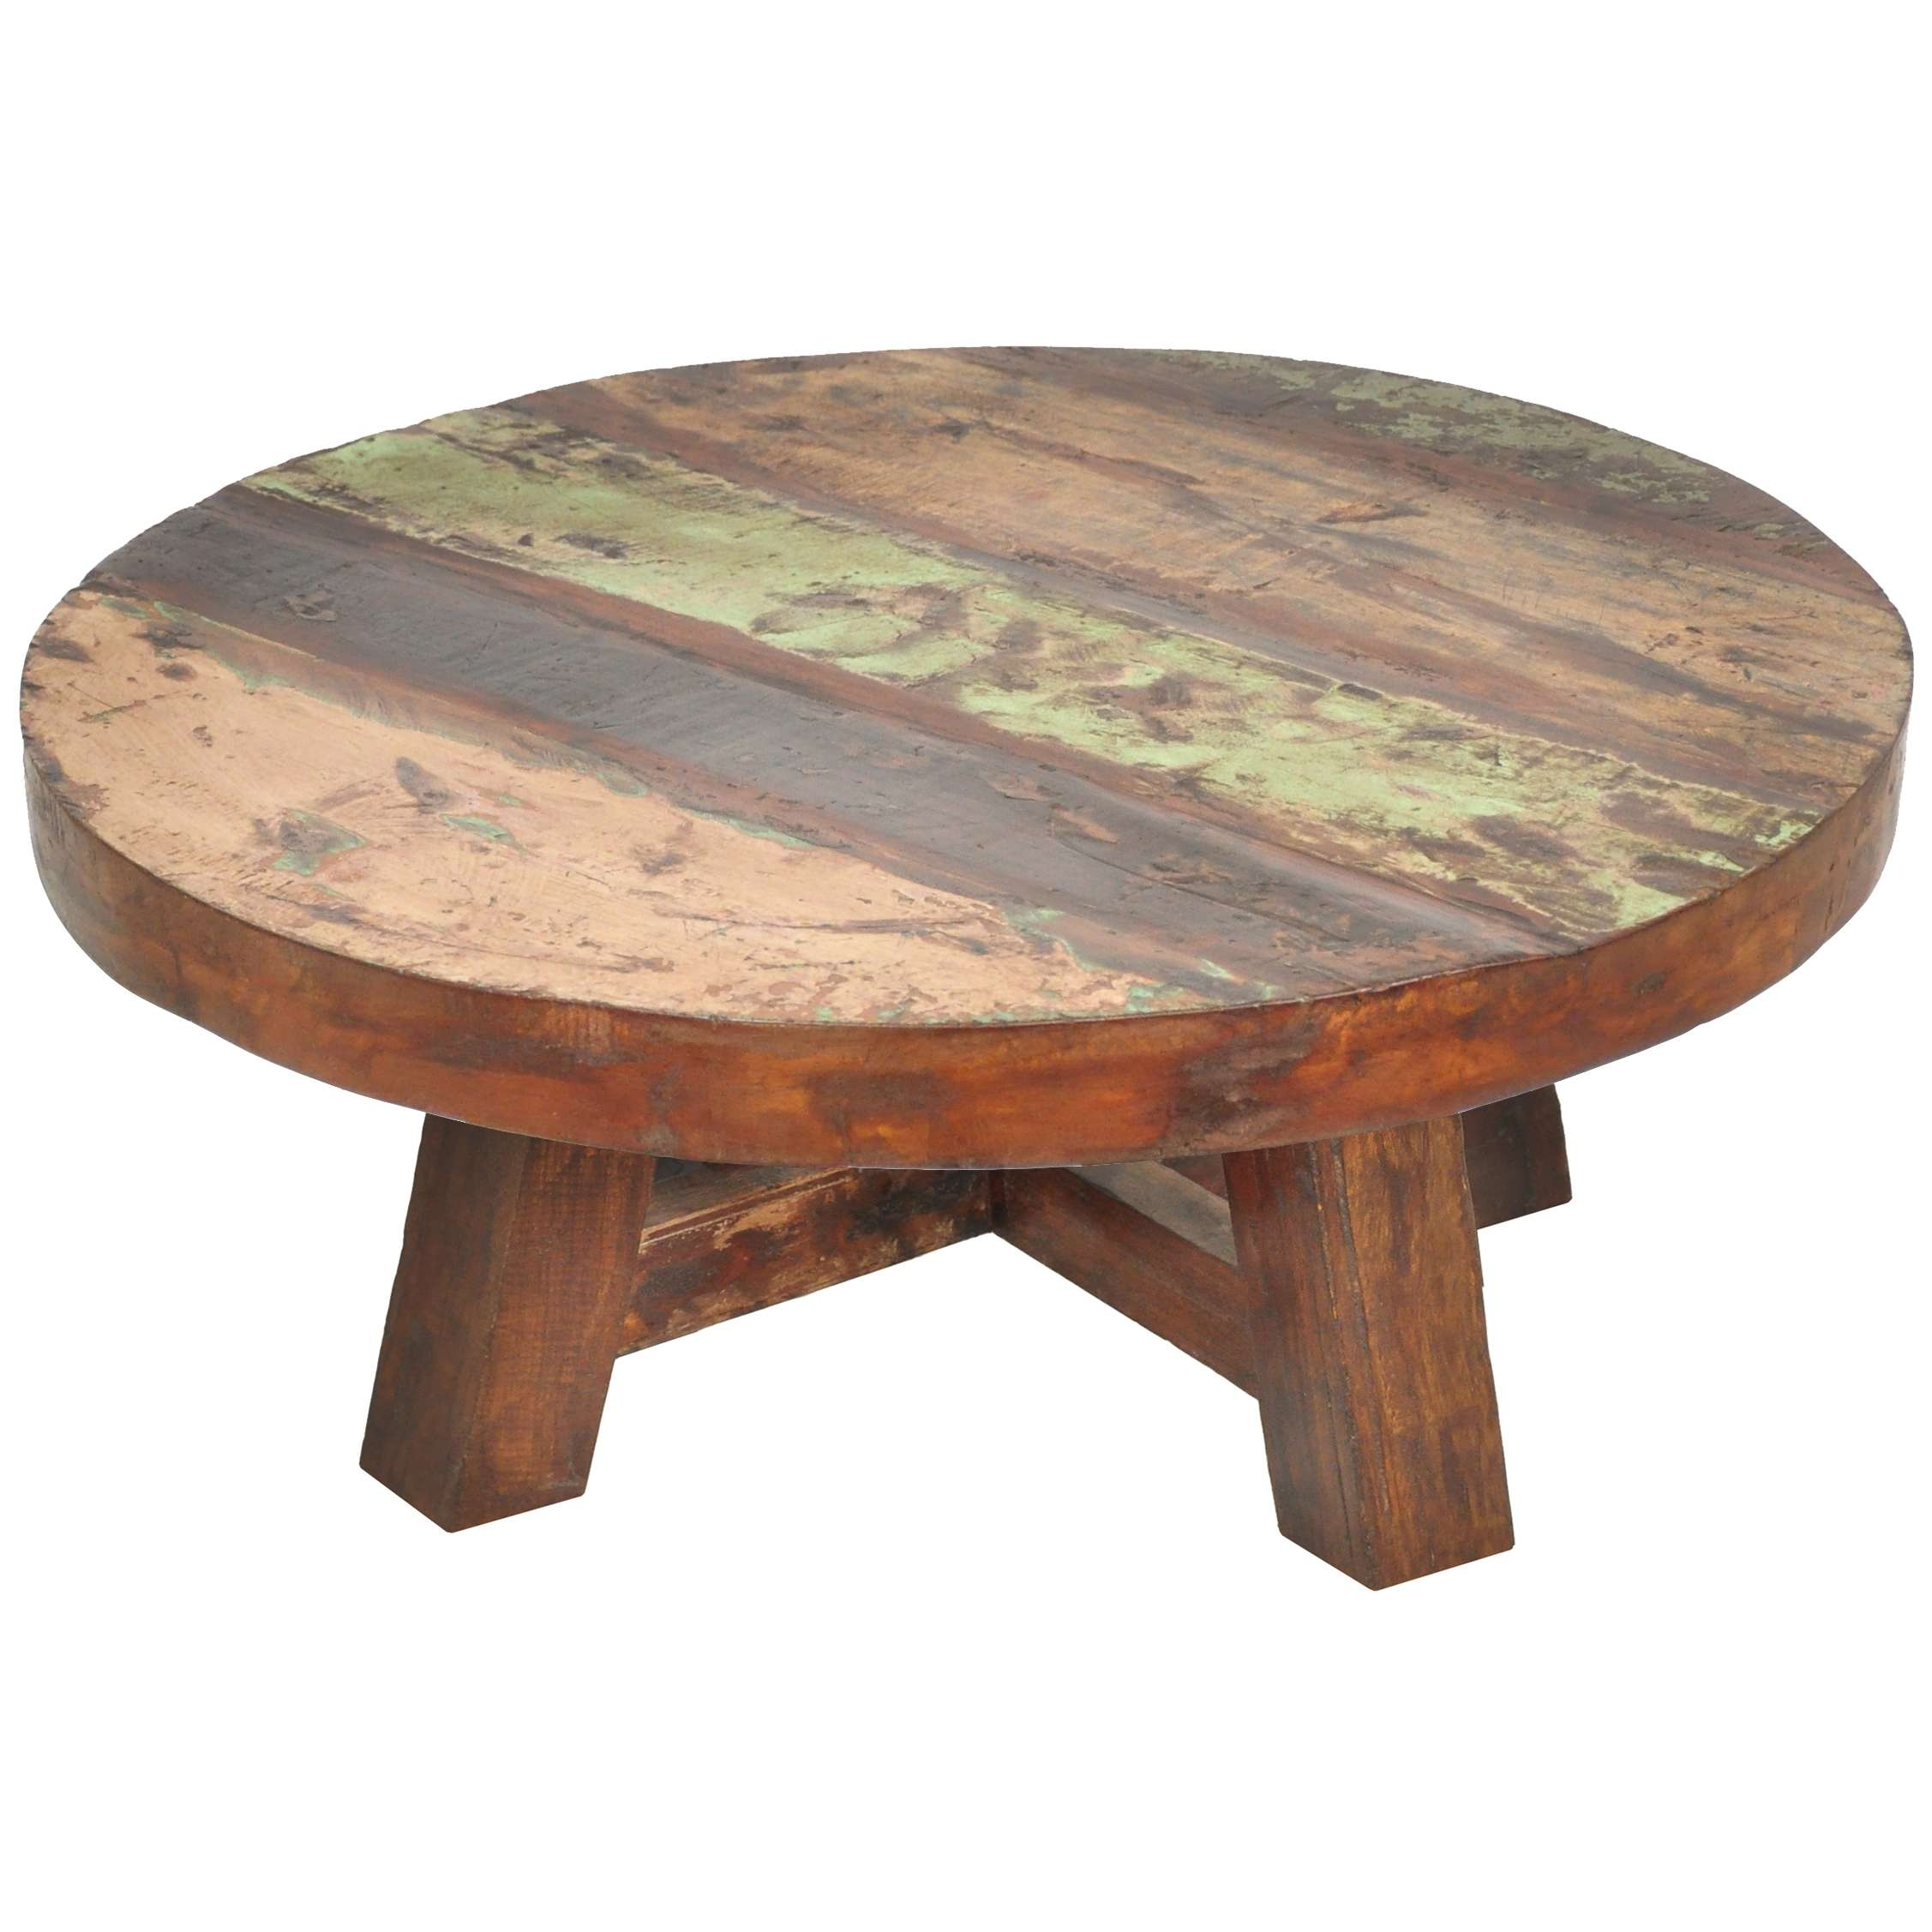 Most Recent Small Round Coffee Tables Intended For Coffee Tables Ideas: Best Small Round Coffee Tables Uk Round (View 6 of 20)